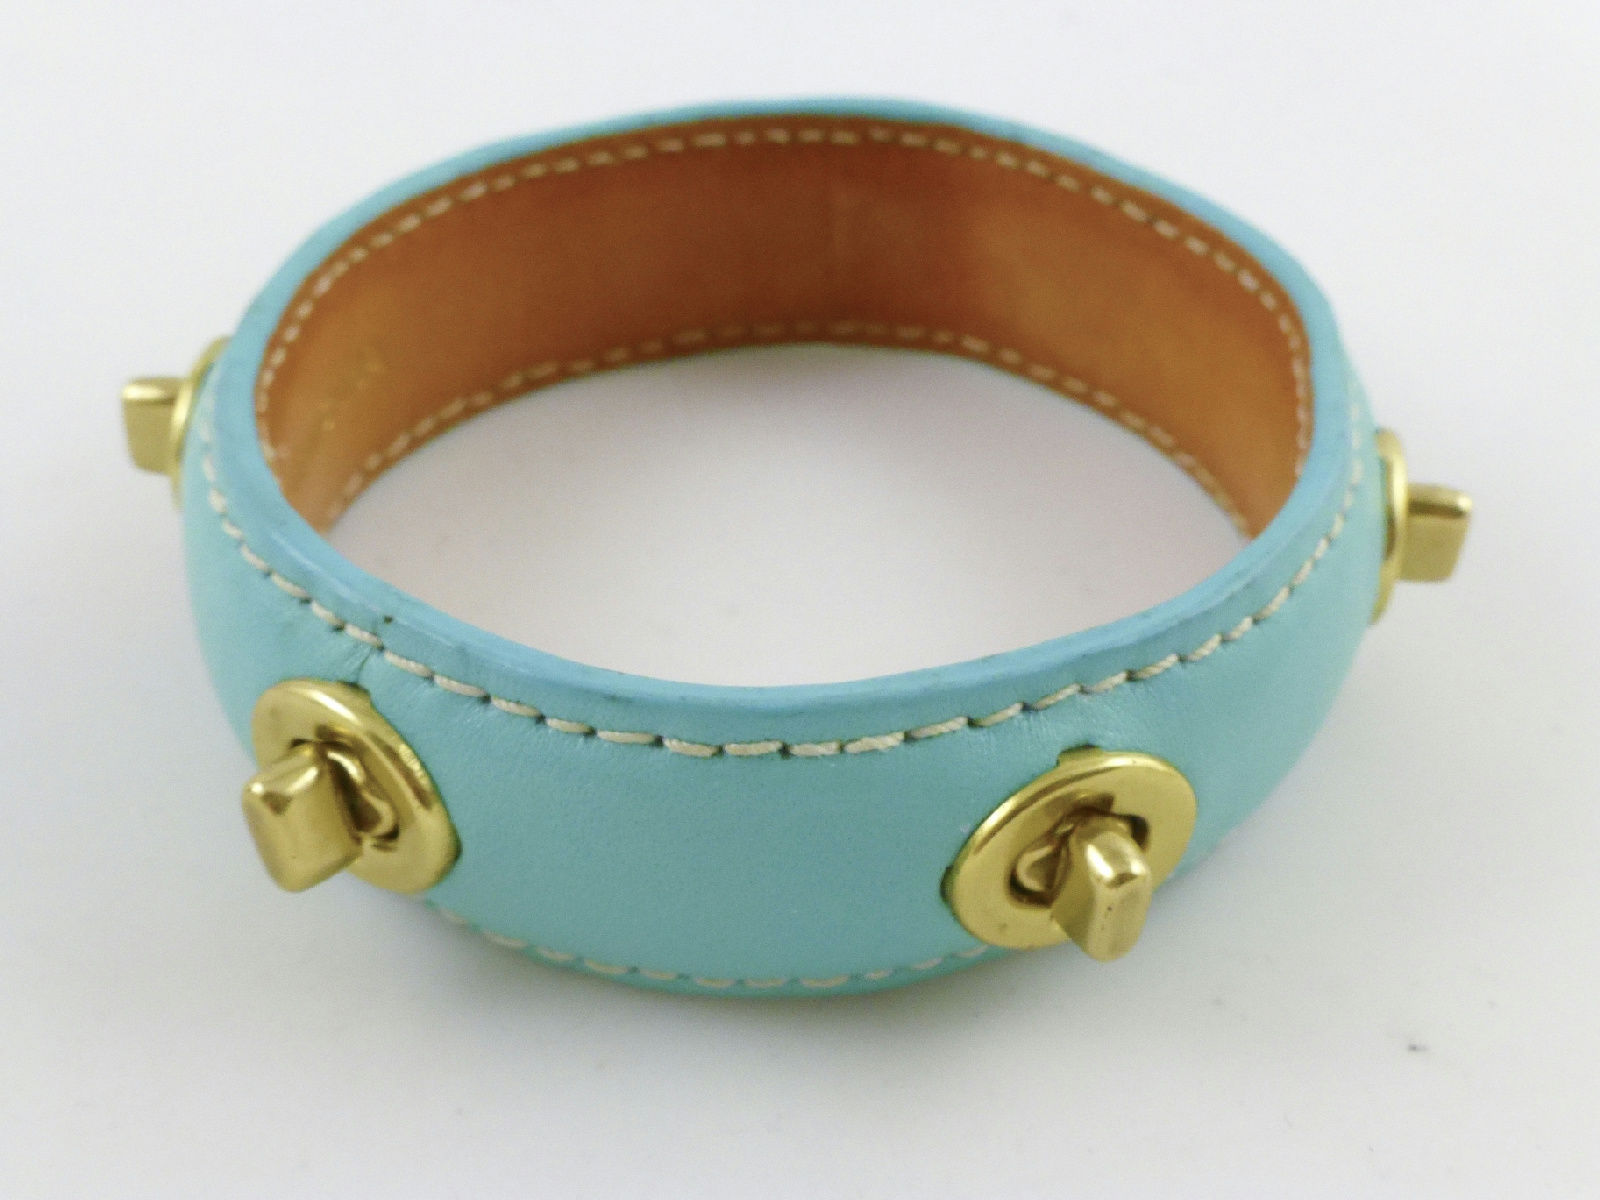 COACH Leather Turnlock Bangle BRACELET - AQUA BLUE - FREE SHIPPING